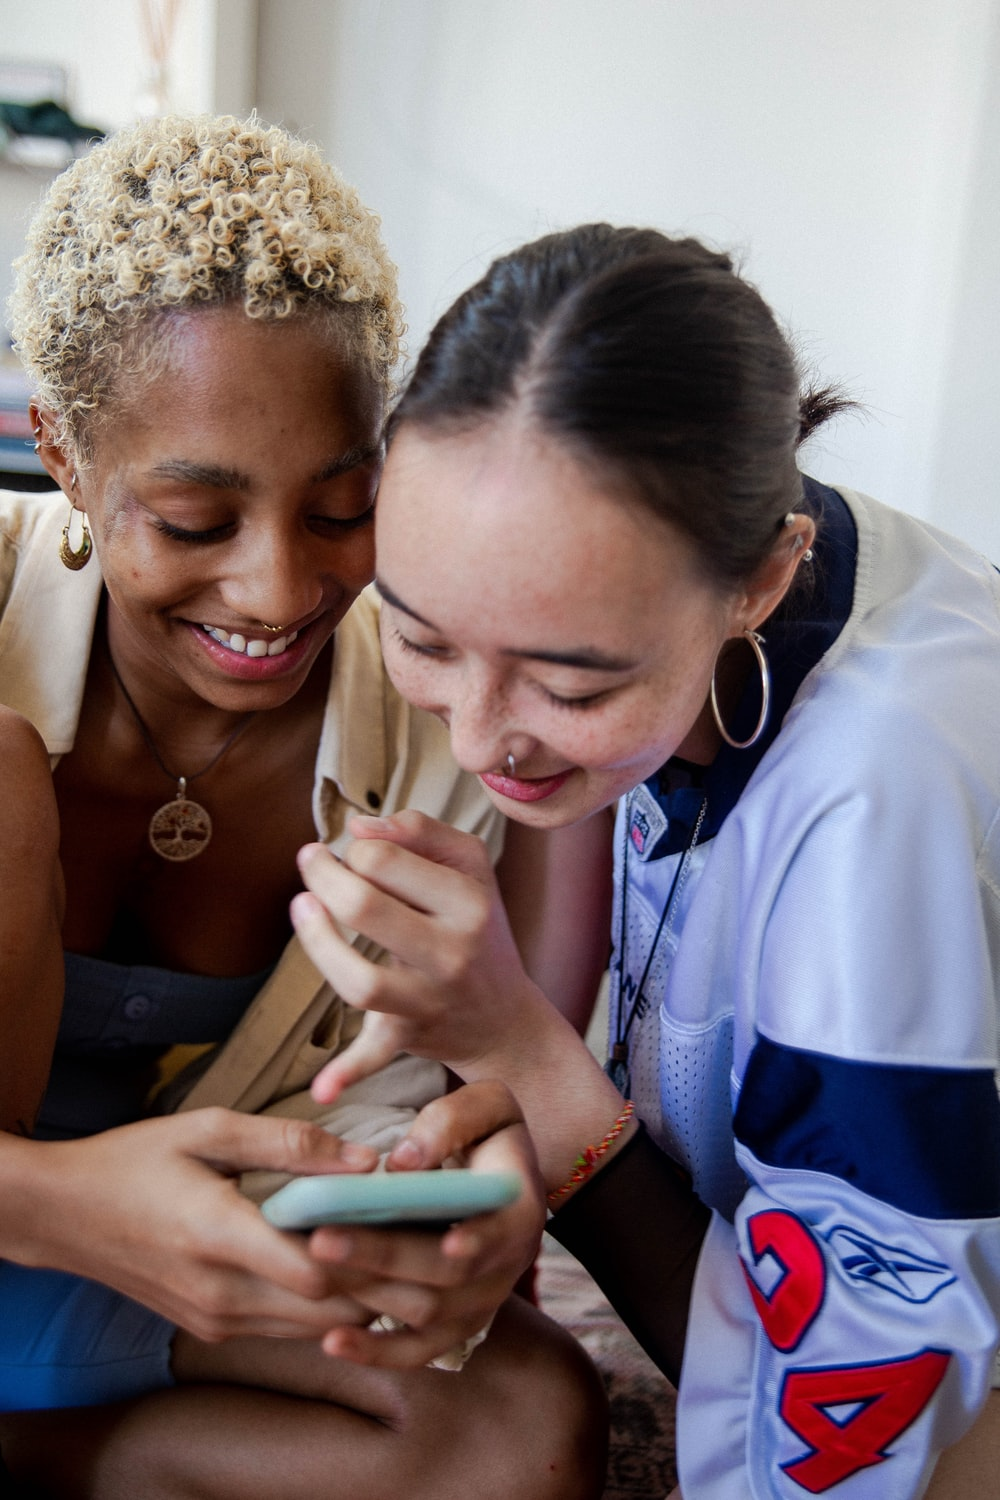 two women laughing and holding a smartphone